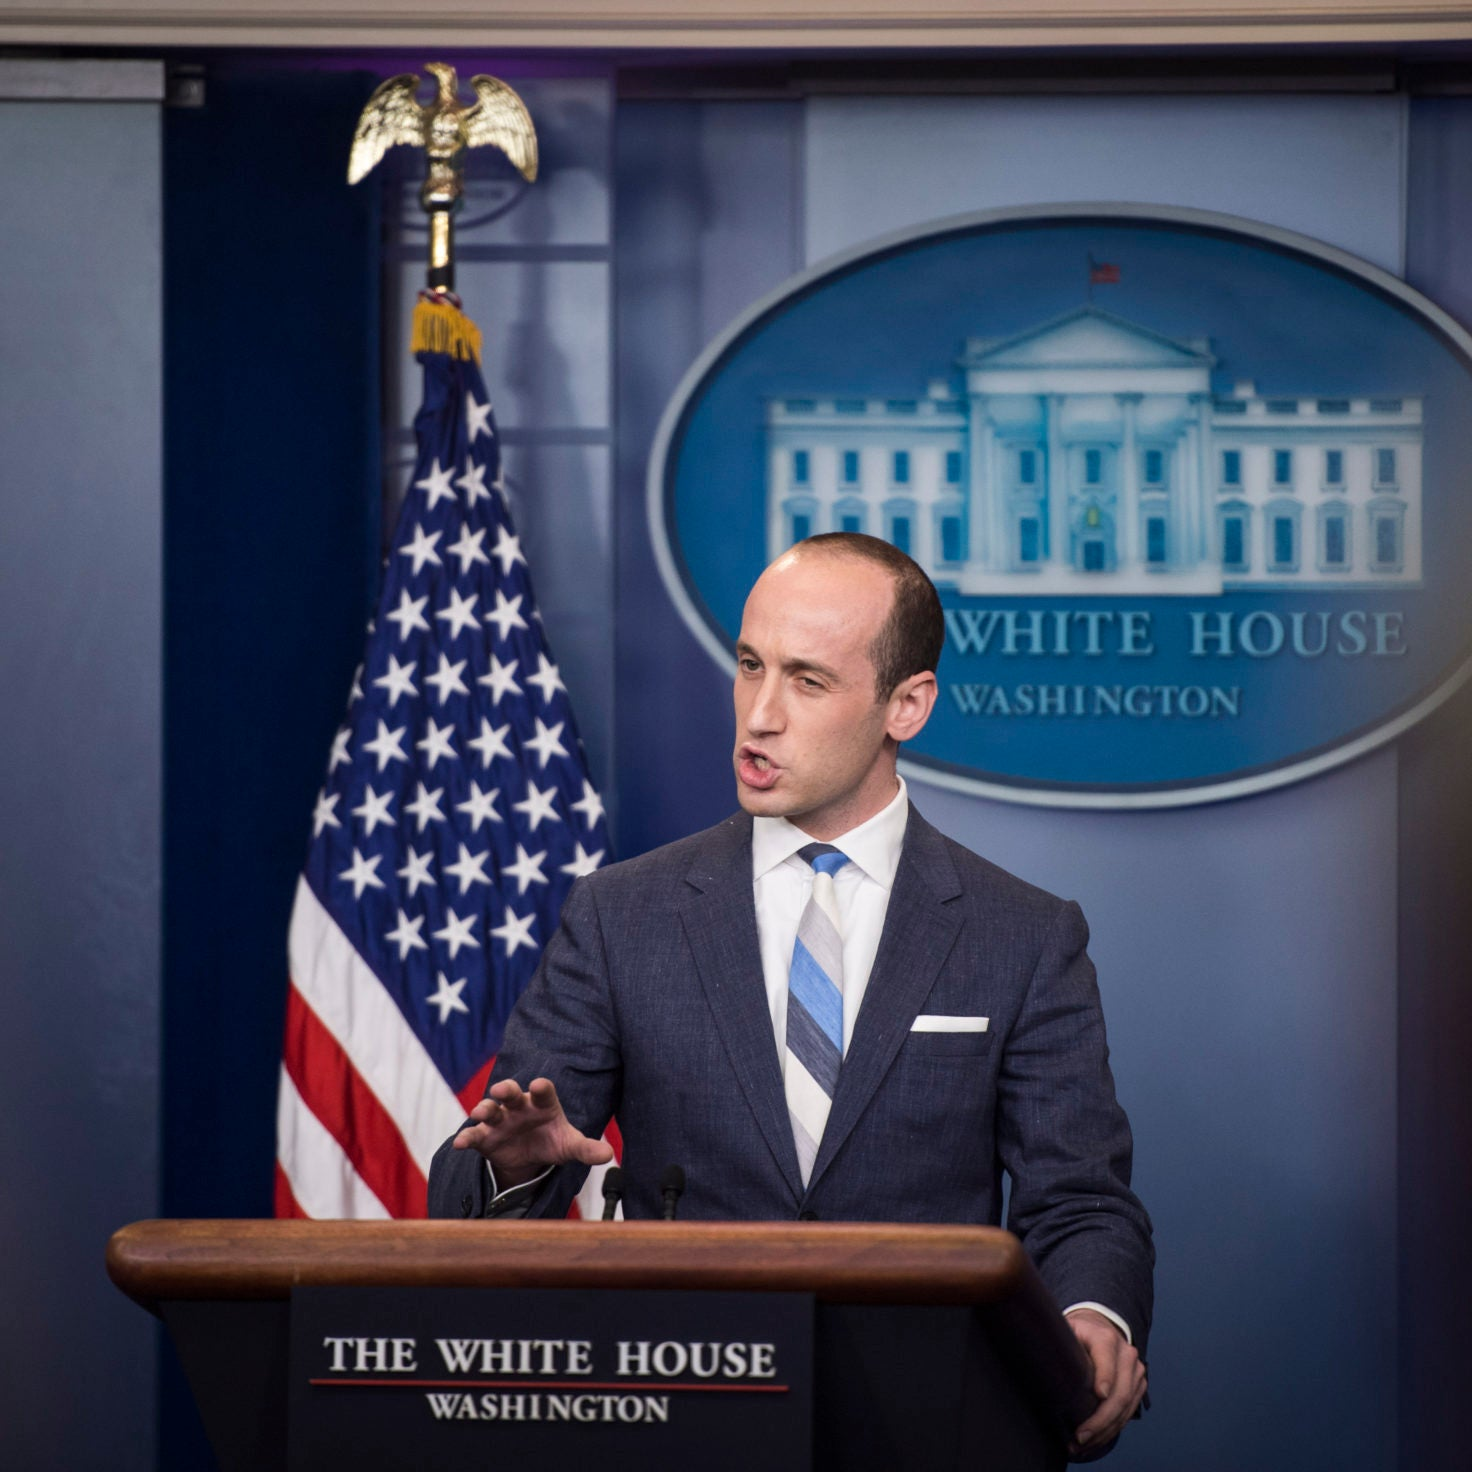 Known White Supremacist Stephen Miller Rumored To Be Writing Trump Speech On Race Relations